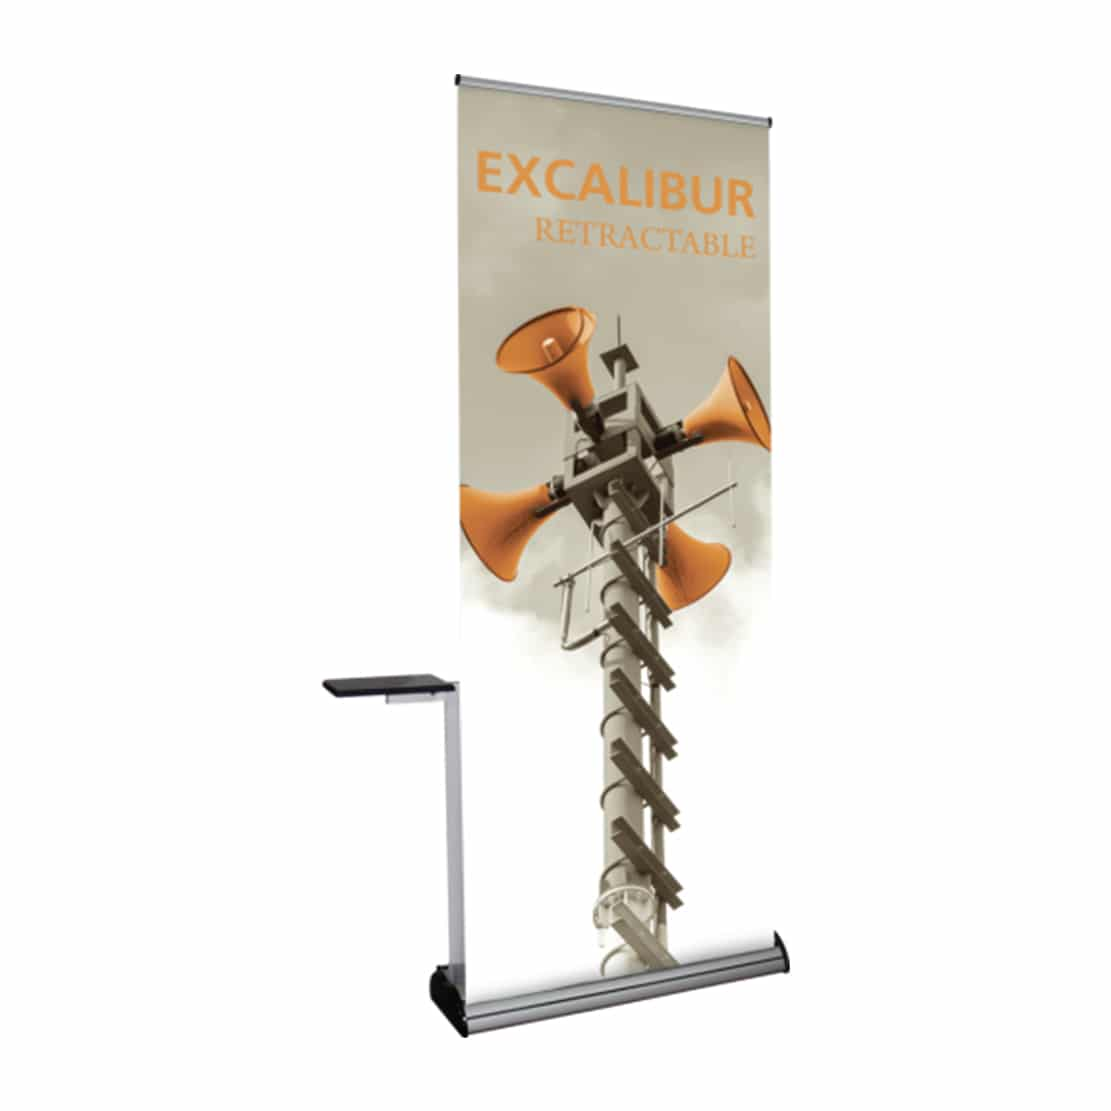 accessory kit shelf attached to banner stand display left side